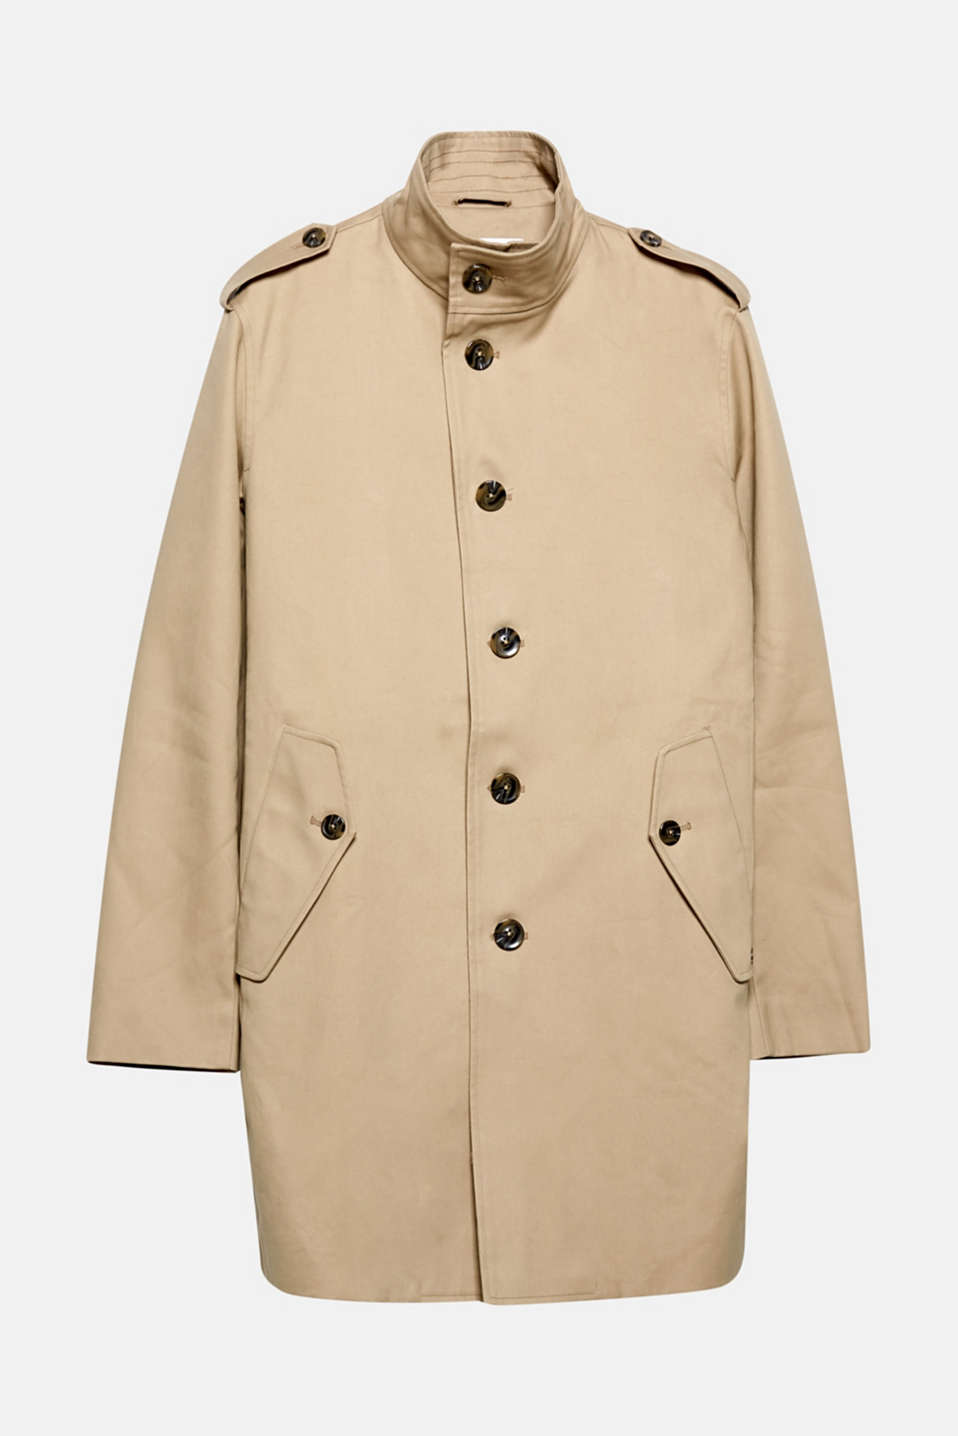 A modern yet timeless coat update: the wide stand-up collar makes this coat a smart head-turner.